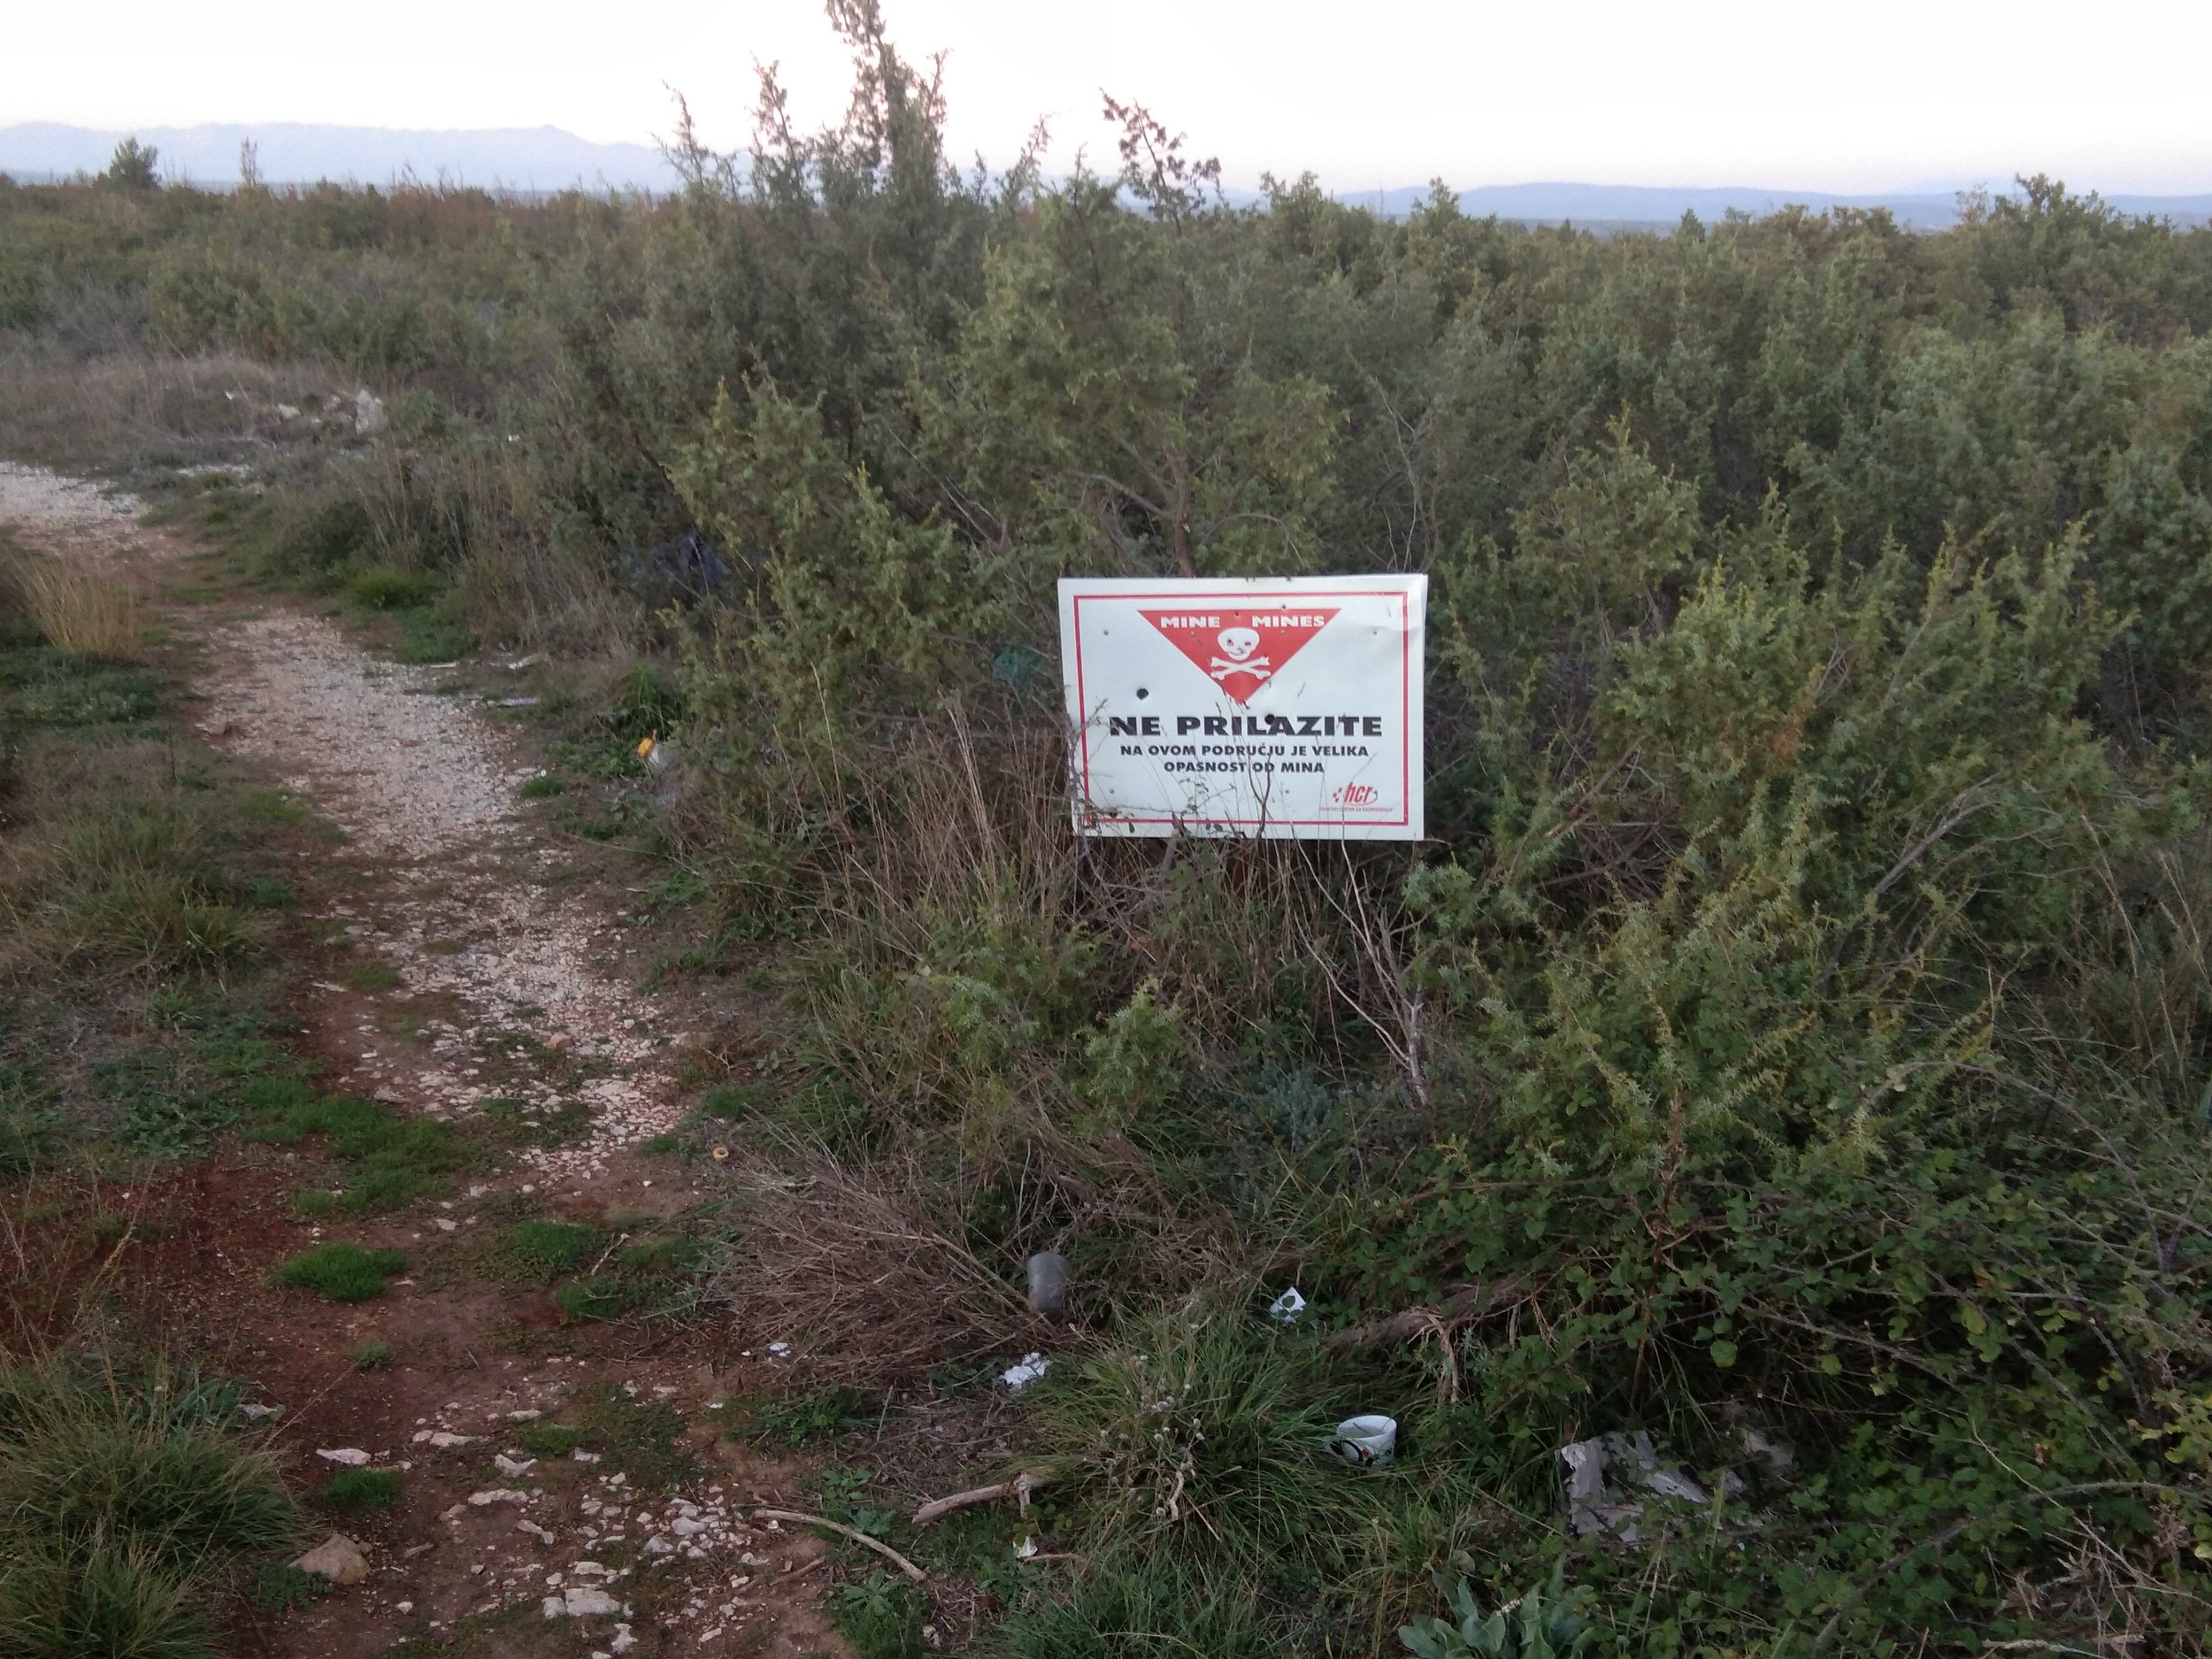 This warning sign states that the area hasn't been cleared and may contain land mines left over from the Croatian War of Independence.